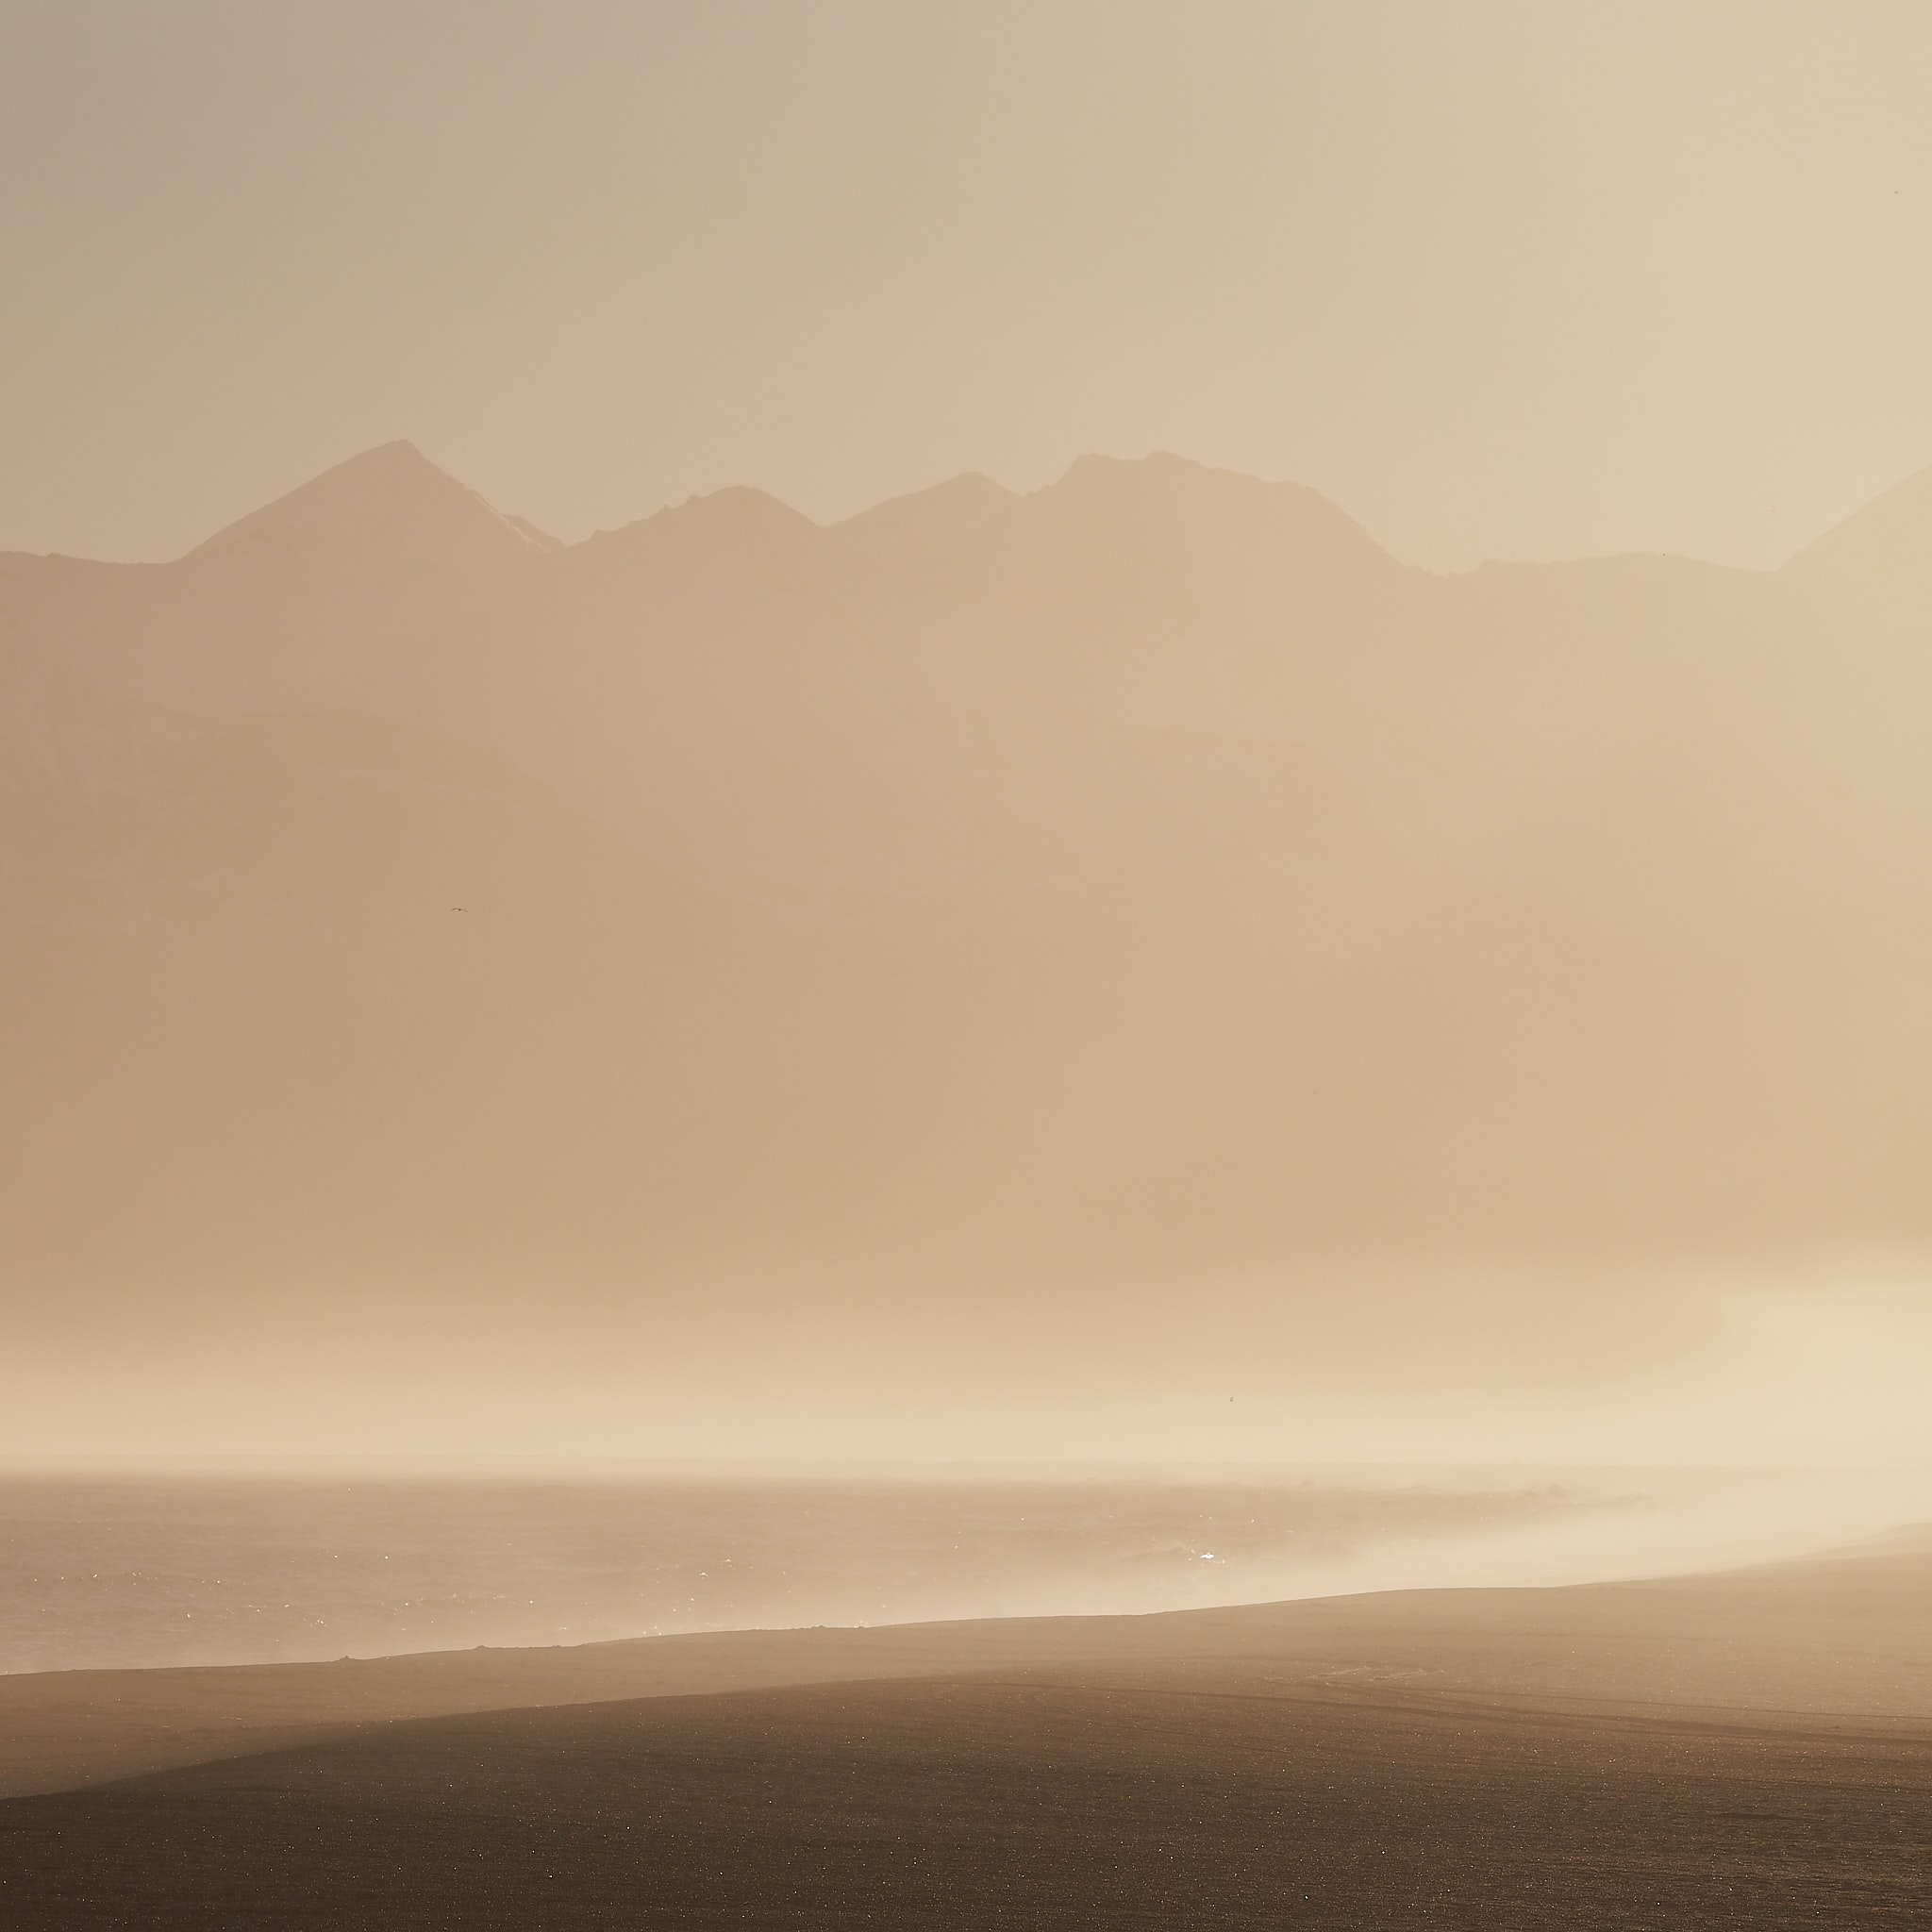 silhouette of foggy mountain range